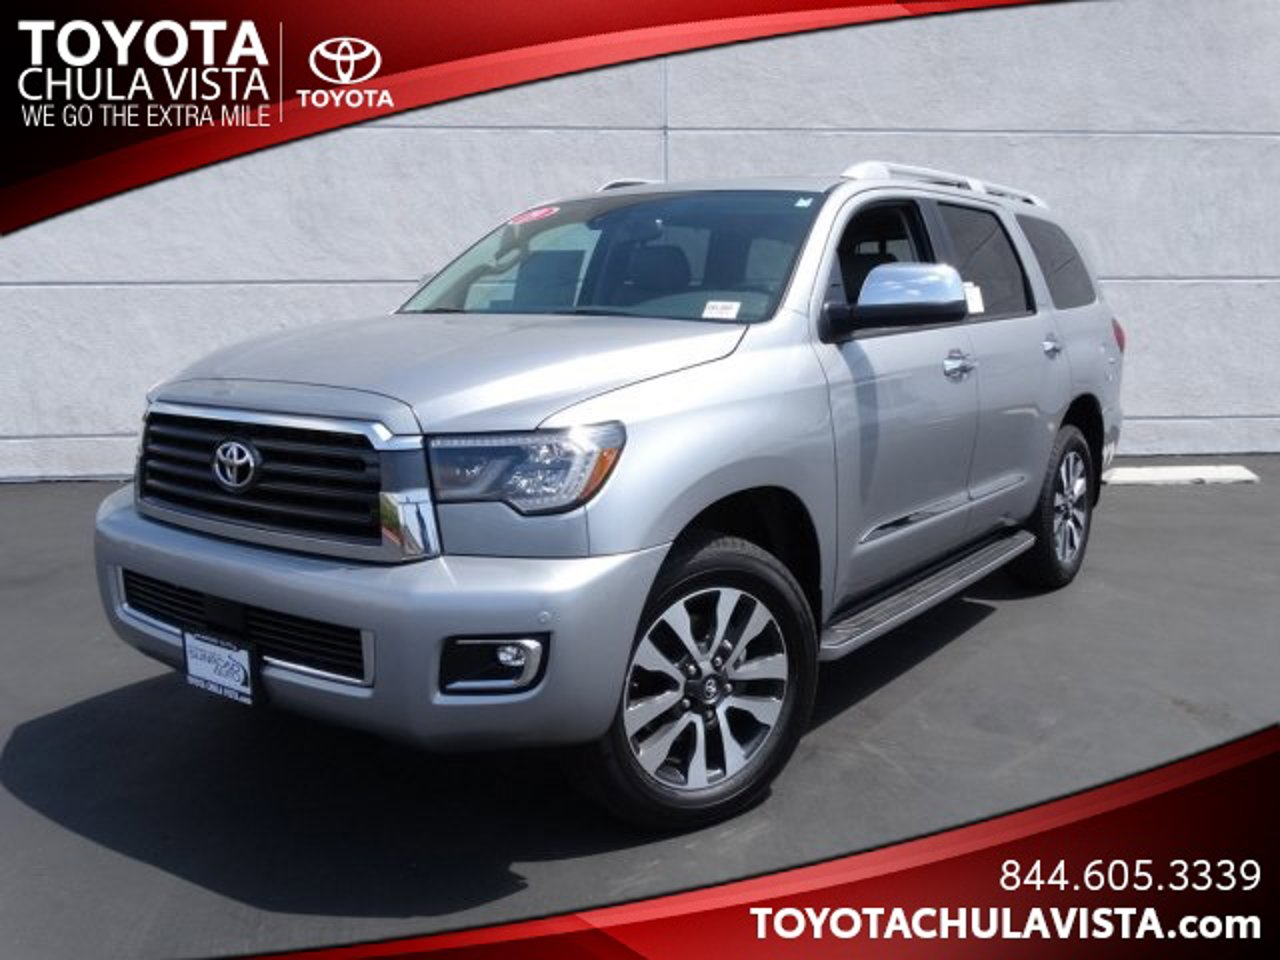 2019 Toyota Sequoia Limited 5TDJY5G14KS173075 | Toyota Chula ... on mercury sable wiring harness, dodge journey wiring harness, hyundai veloster wiring harness, honda s2000 wiring harness, audi a4 wiring harness, infiniti g35 wiring harness, jeep grand wagoneer wiring harness, dodge ram 1500 wiring harness, jeep patriot wiring harness, hummer h2 wiring harness, pontiac aztek wiring harness, ford edge wiring harness, dodge dakota wiring harness, honda fit wiring harness, datsun 510 wiring harness, suzuki grand vitara wiring harness, kia sportage wiring harness, chevy silverado wiring harness, buick enclave wiring harness,